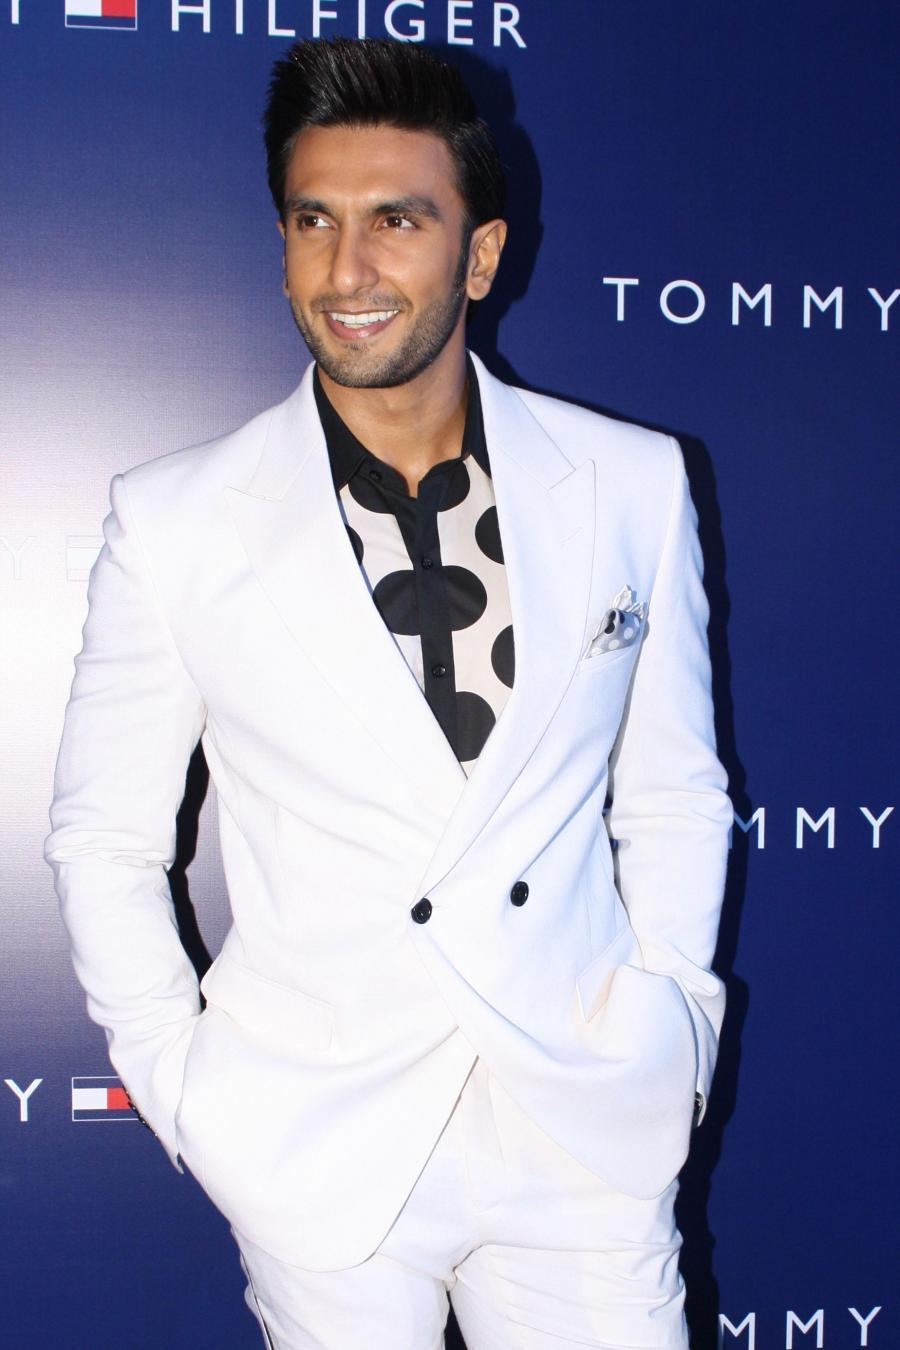 Actor Ranveer Singh at the Red Carpet of 10th anniversary of fashion brand Tommy Hilfiger`s existence in India, in New Delhi, on Sept. 28,2014. (Photo: Amlan Paliwal/IANS)